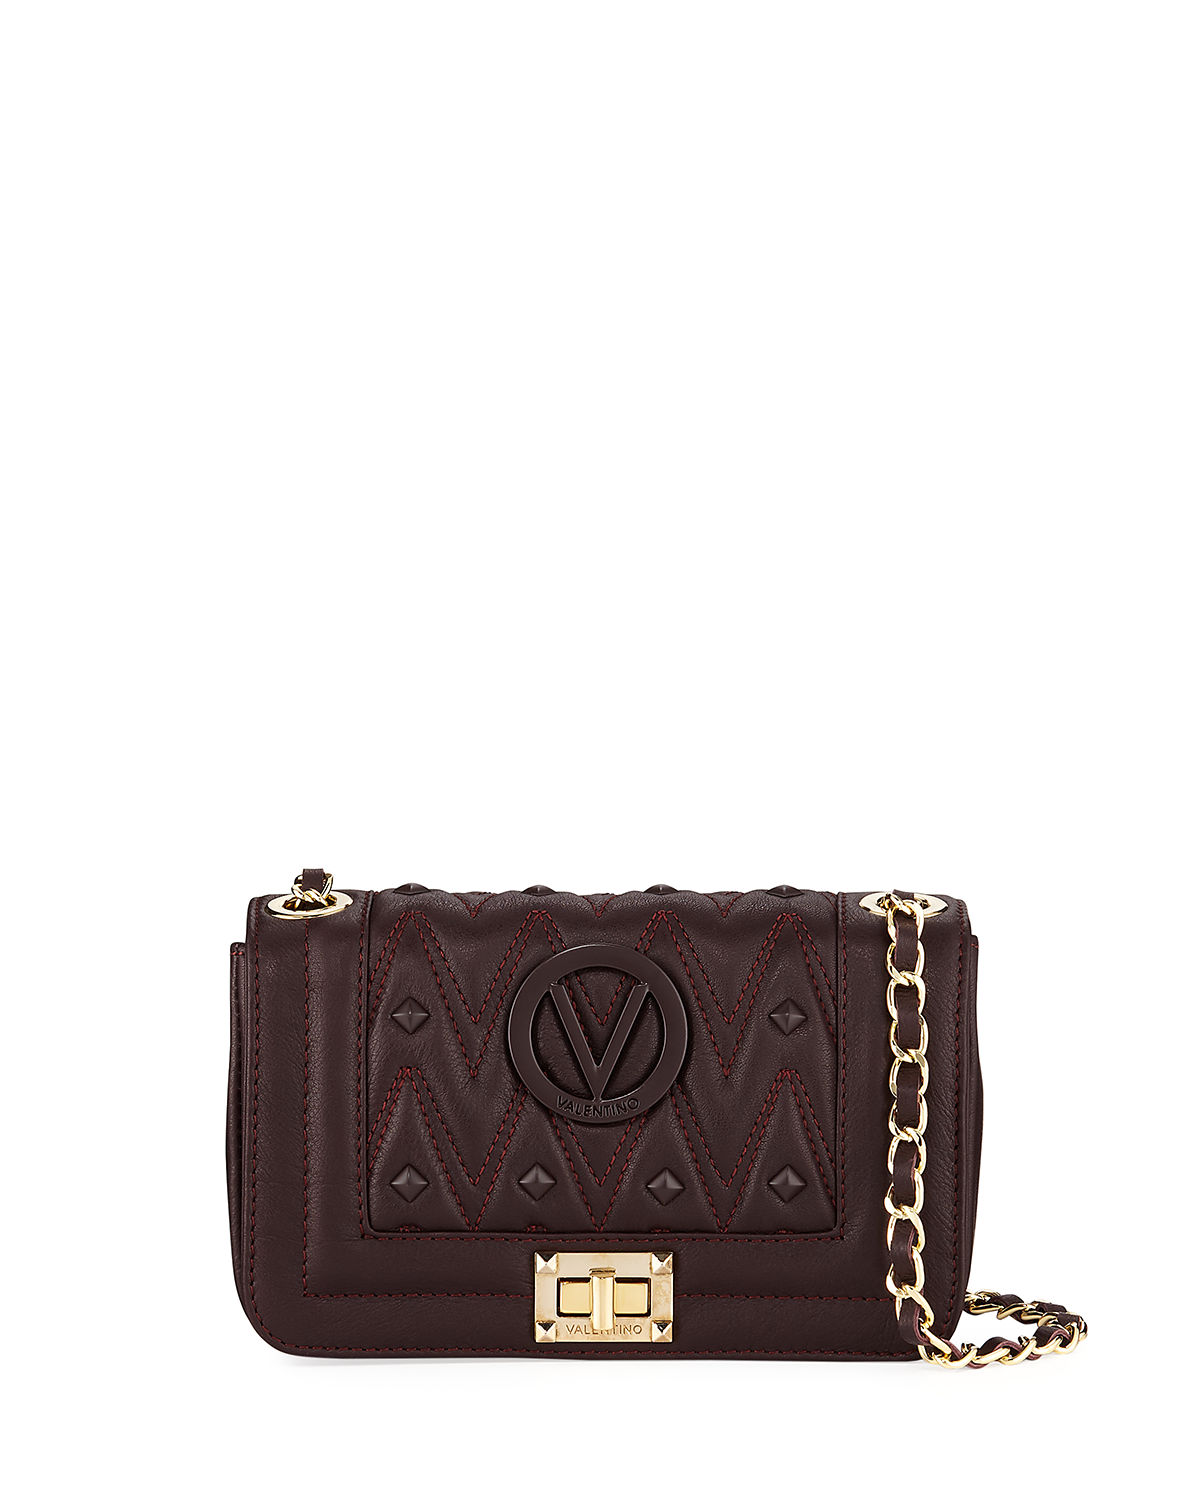 VALENTINO BY MARIO VALENTINO BEATRIZ D SAUVAGE STUDS QUILTED LEATHER SHOULDER BAG